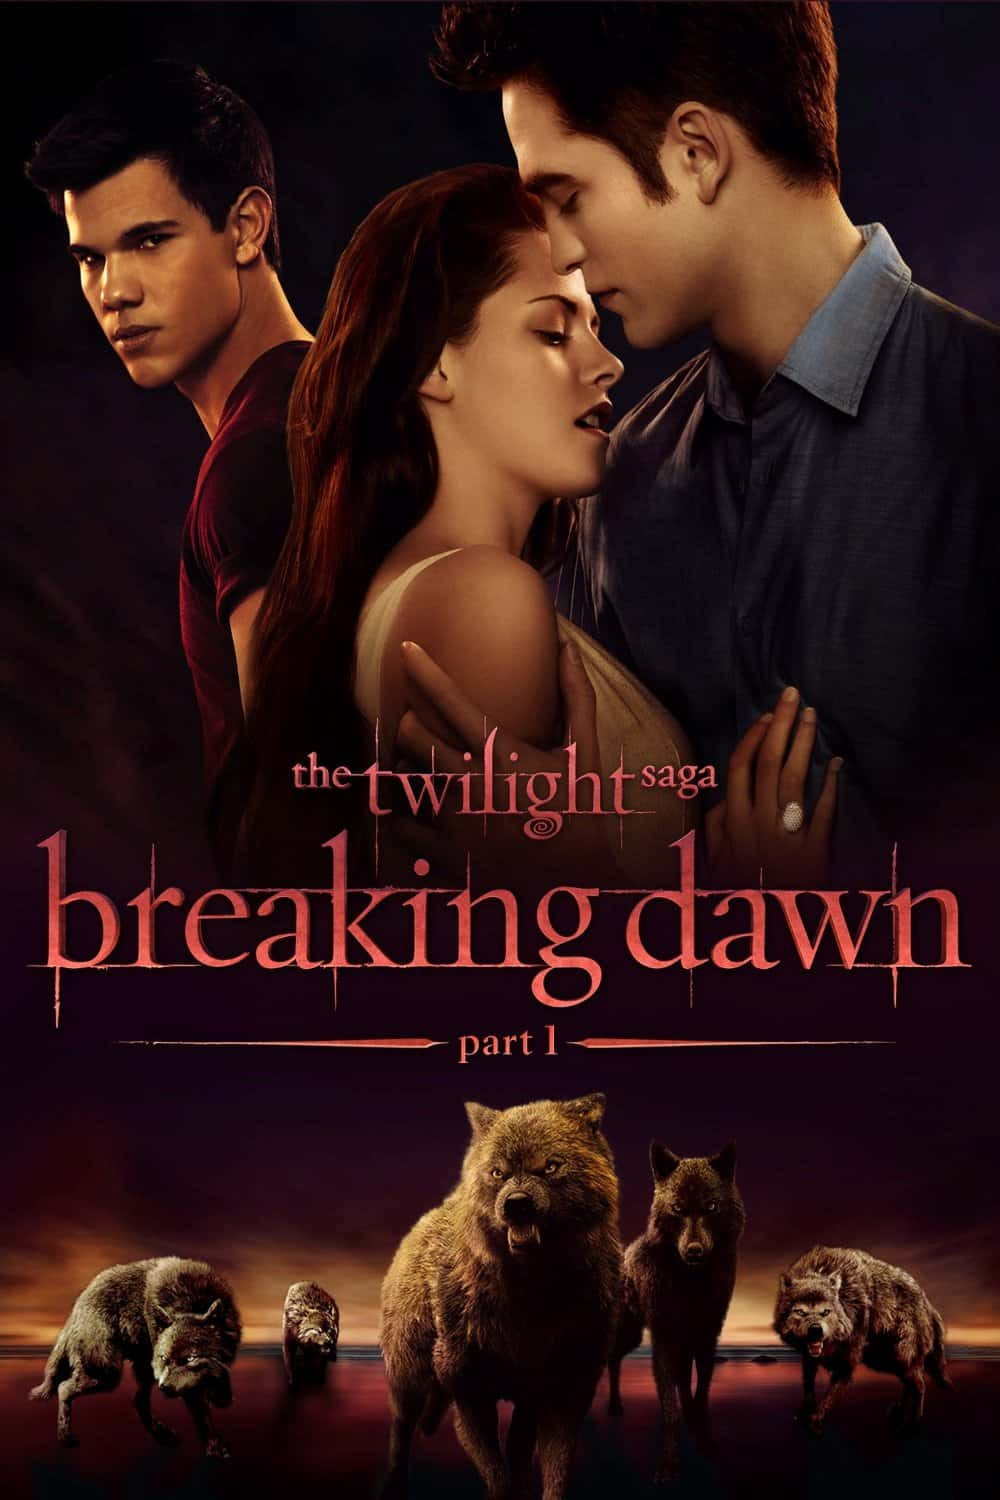 The Twilight Saga: Breaking Dawn - Part 1, 2011